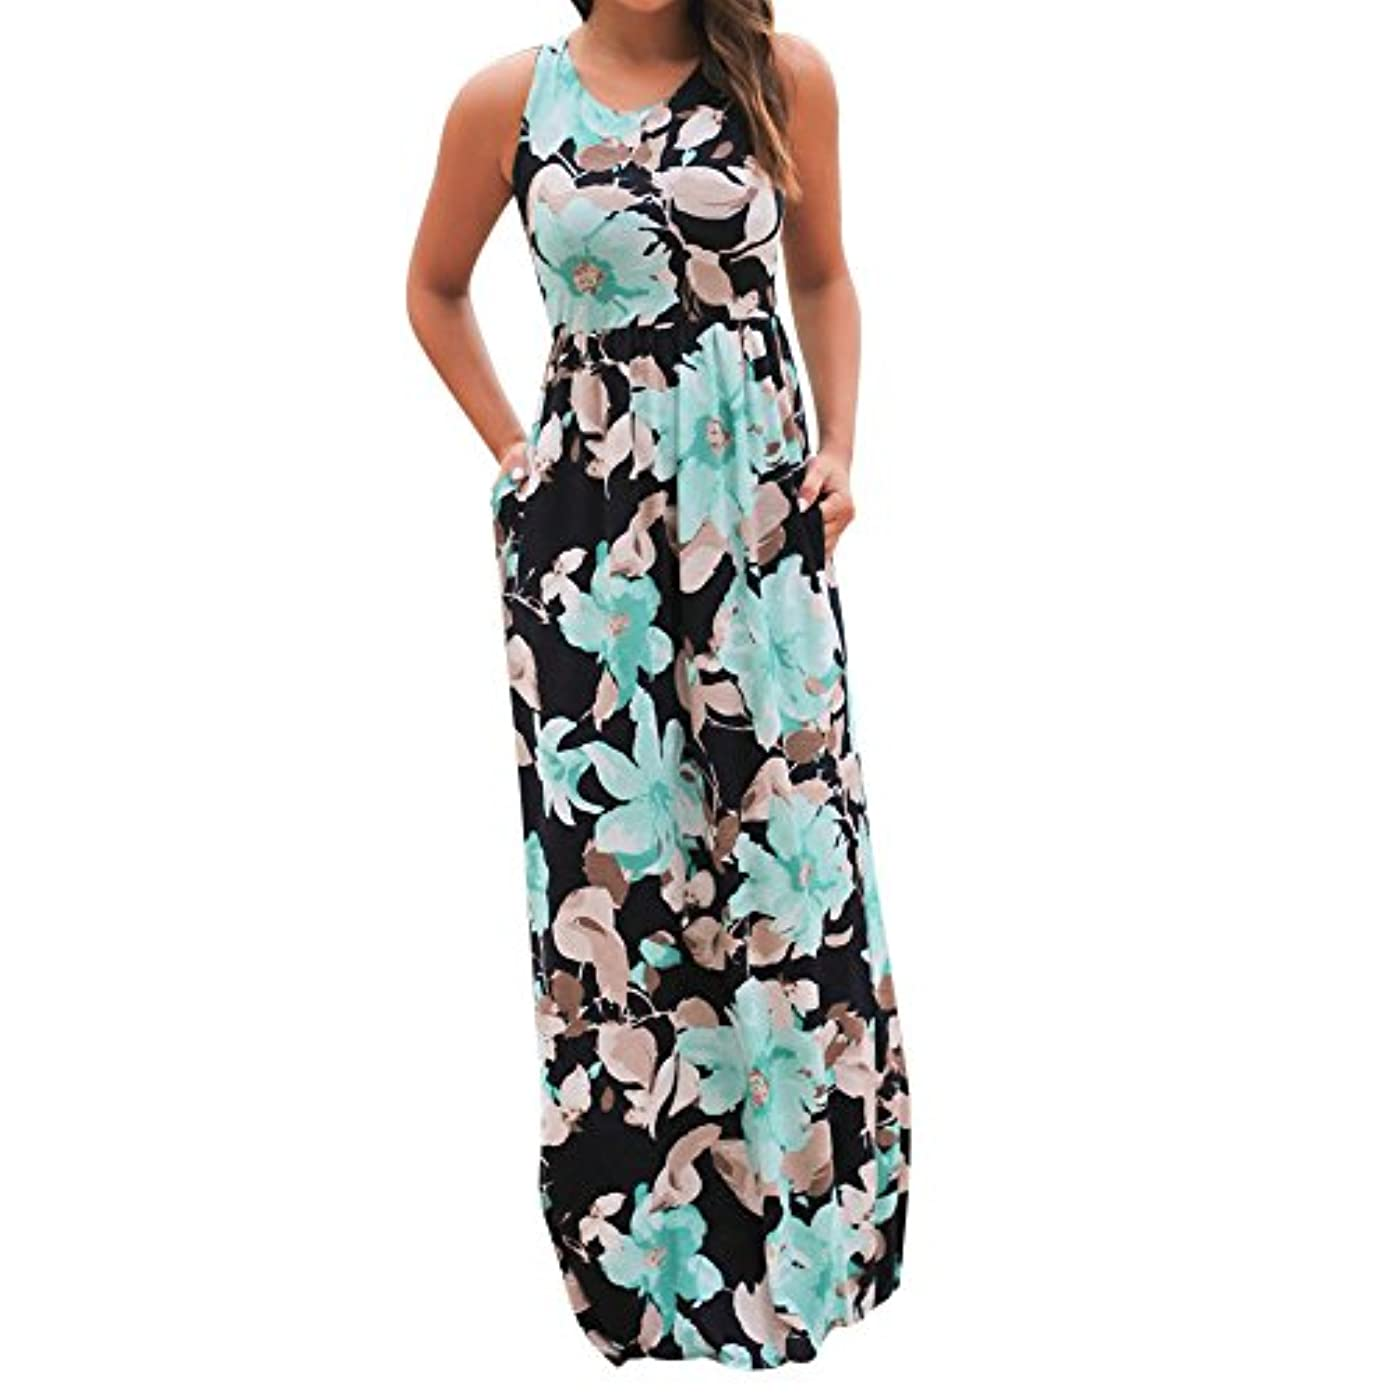 思われる性能受賞SakuraBest Women Sleeveless Floral Print Maxi Long Dress with Pockets (M, Blue)